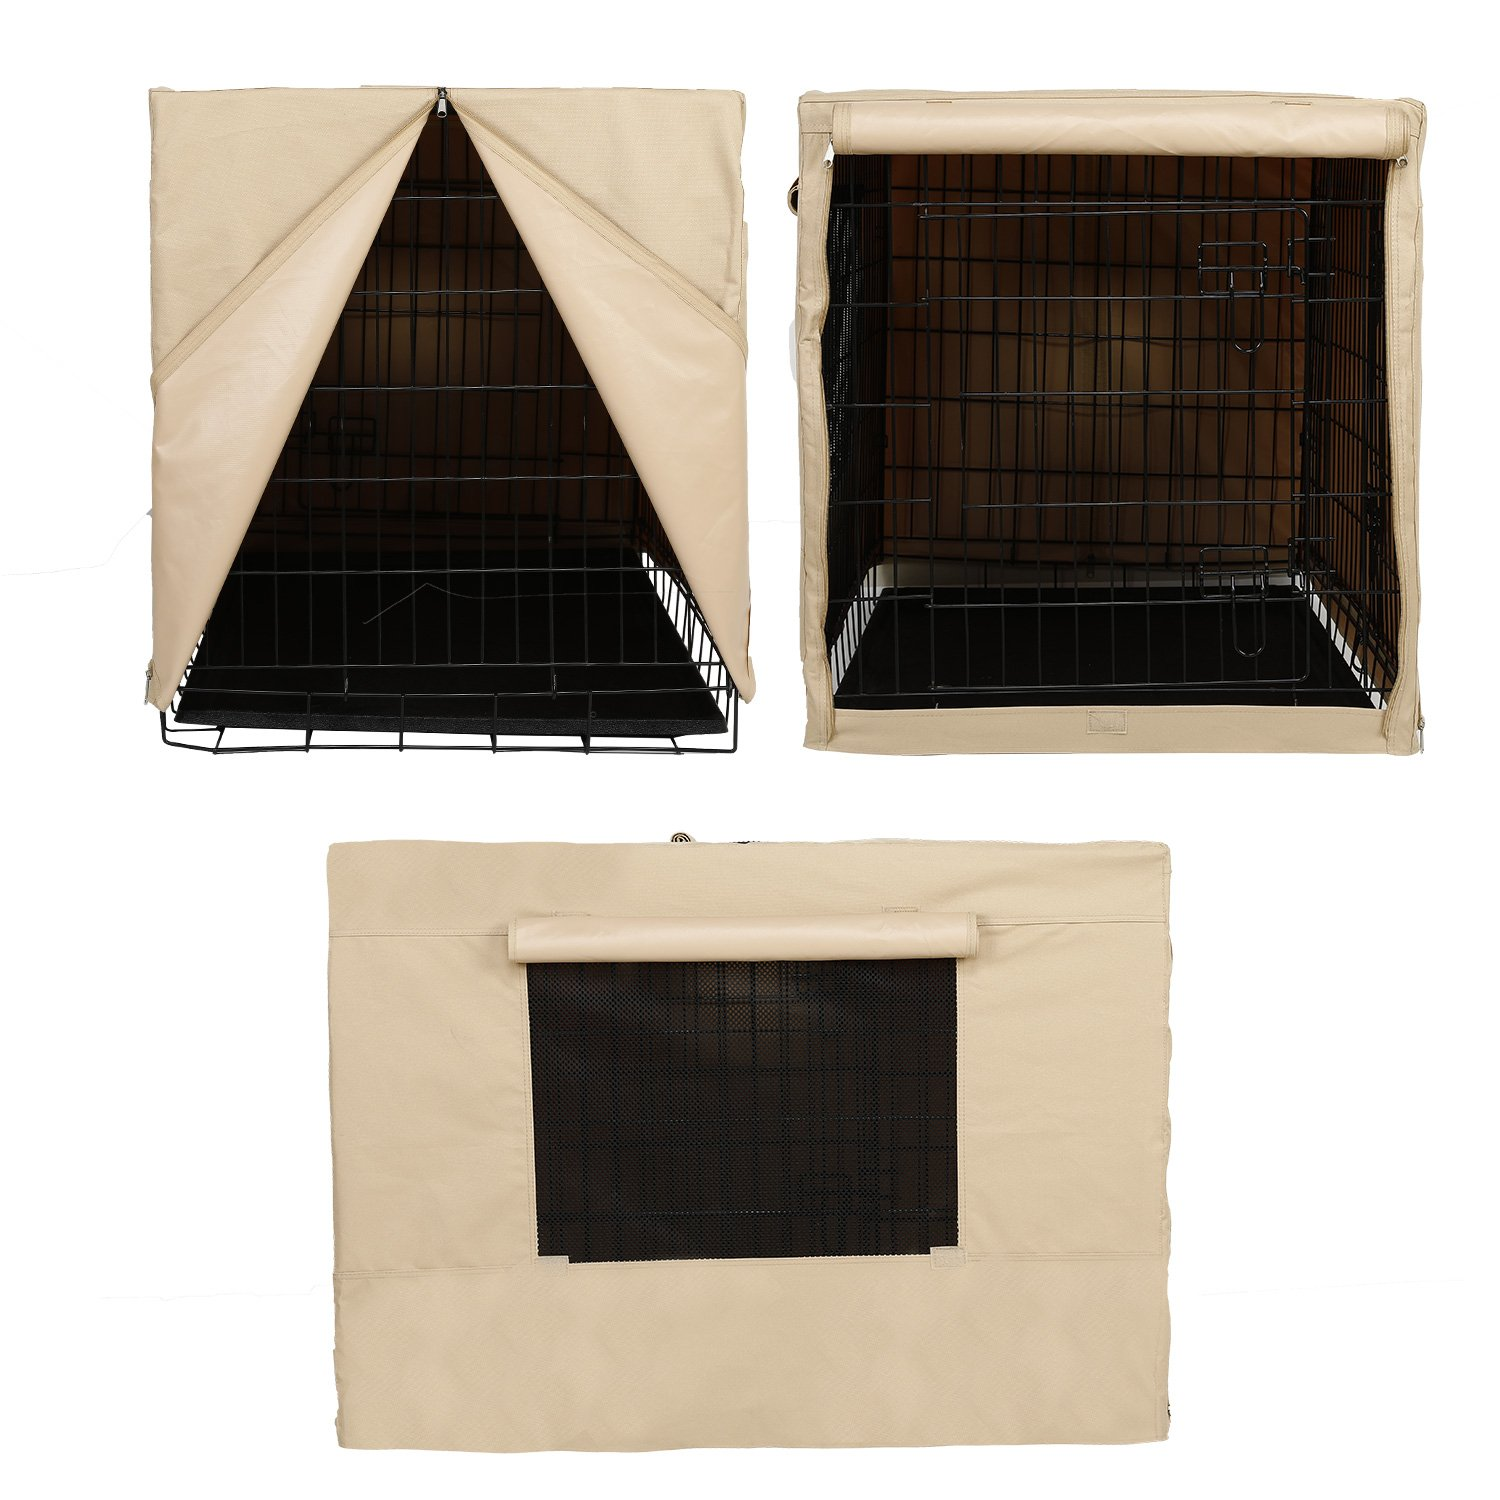 X-ZONE PET Indoor/Outdoor Dog Crate Cover, Polyester Crate Cover or Durable Windproof Kennel Covers for Wire dog Crates (30-Inch) by X-ZONE PET (Image #4)